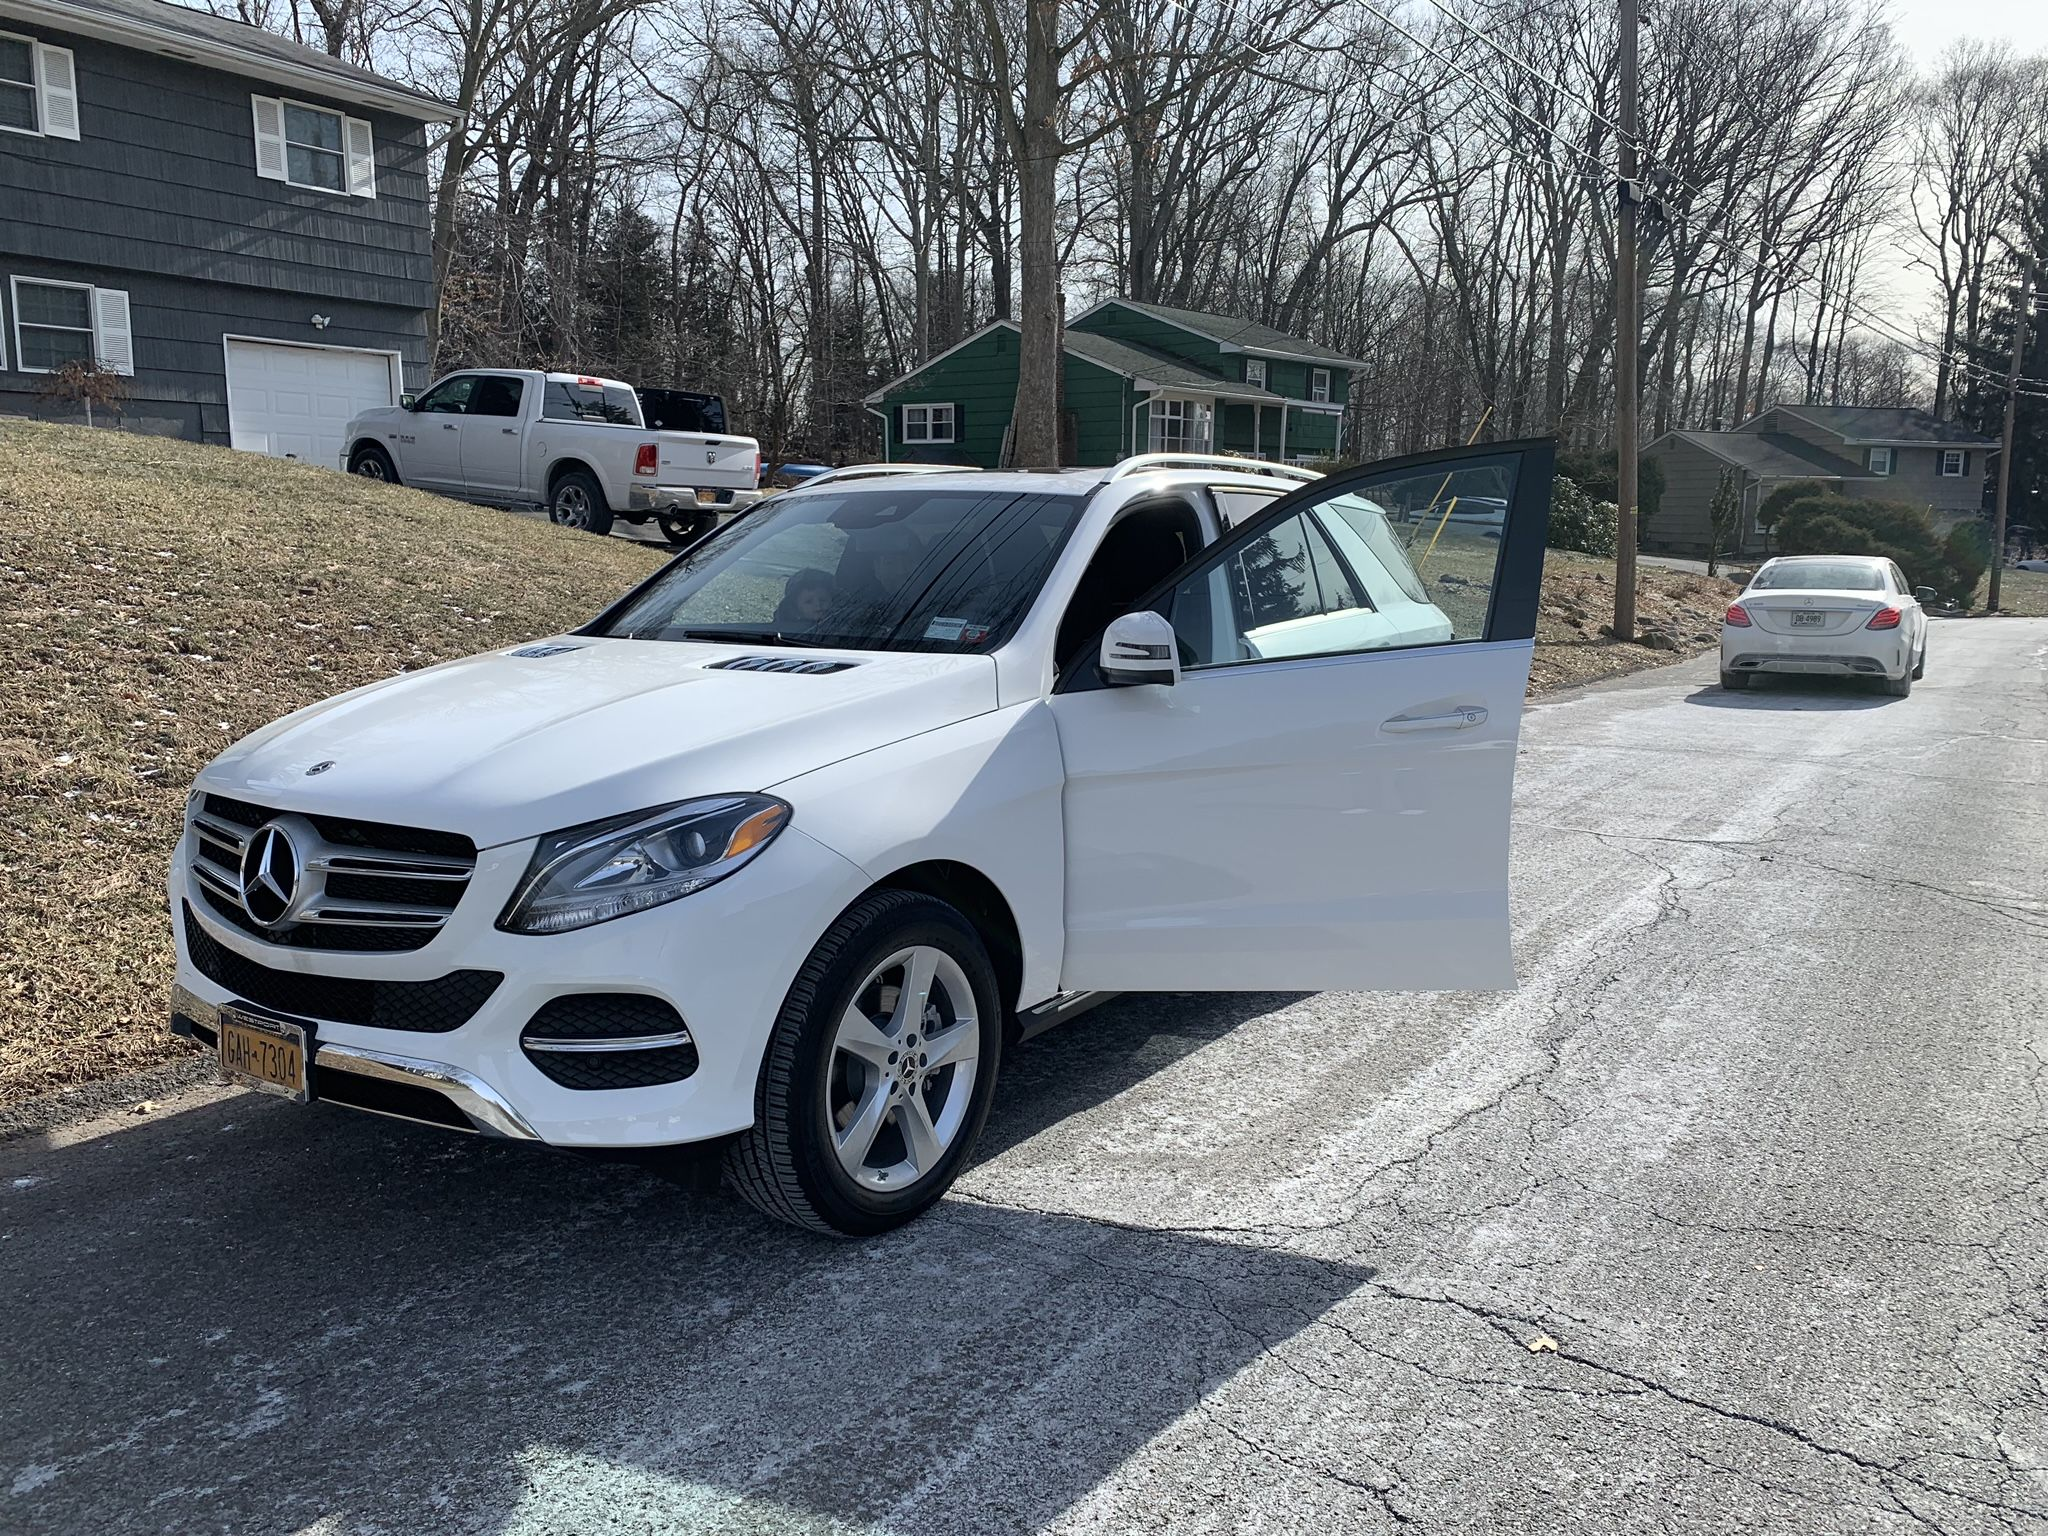 Check Out This New 2019 Mercedes Gle 350 That We Just Delivered To Another Satisfied Family Mercedes Family Autoleasing Car Lease Lease Deals Cars For Sale